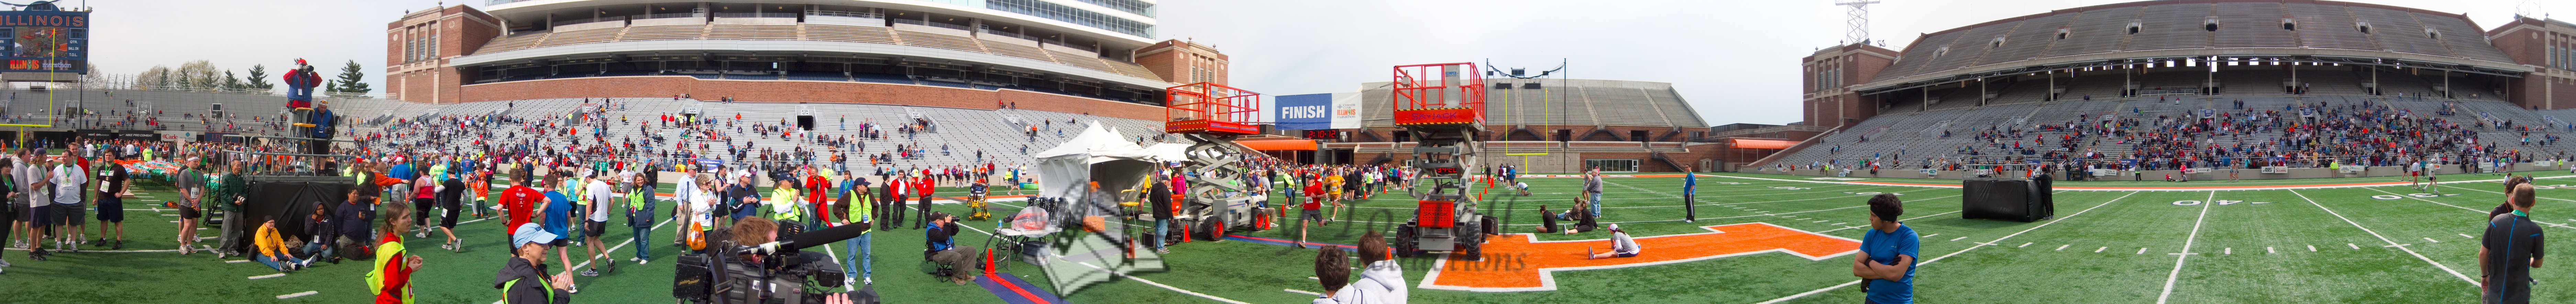 p124-1-p124-8half  Finish time 2:10:12 Illinois Marathon 2011 Memorial Stadium Finish Line